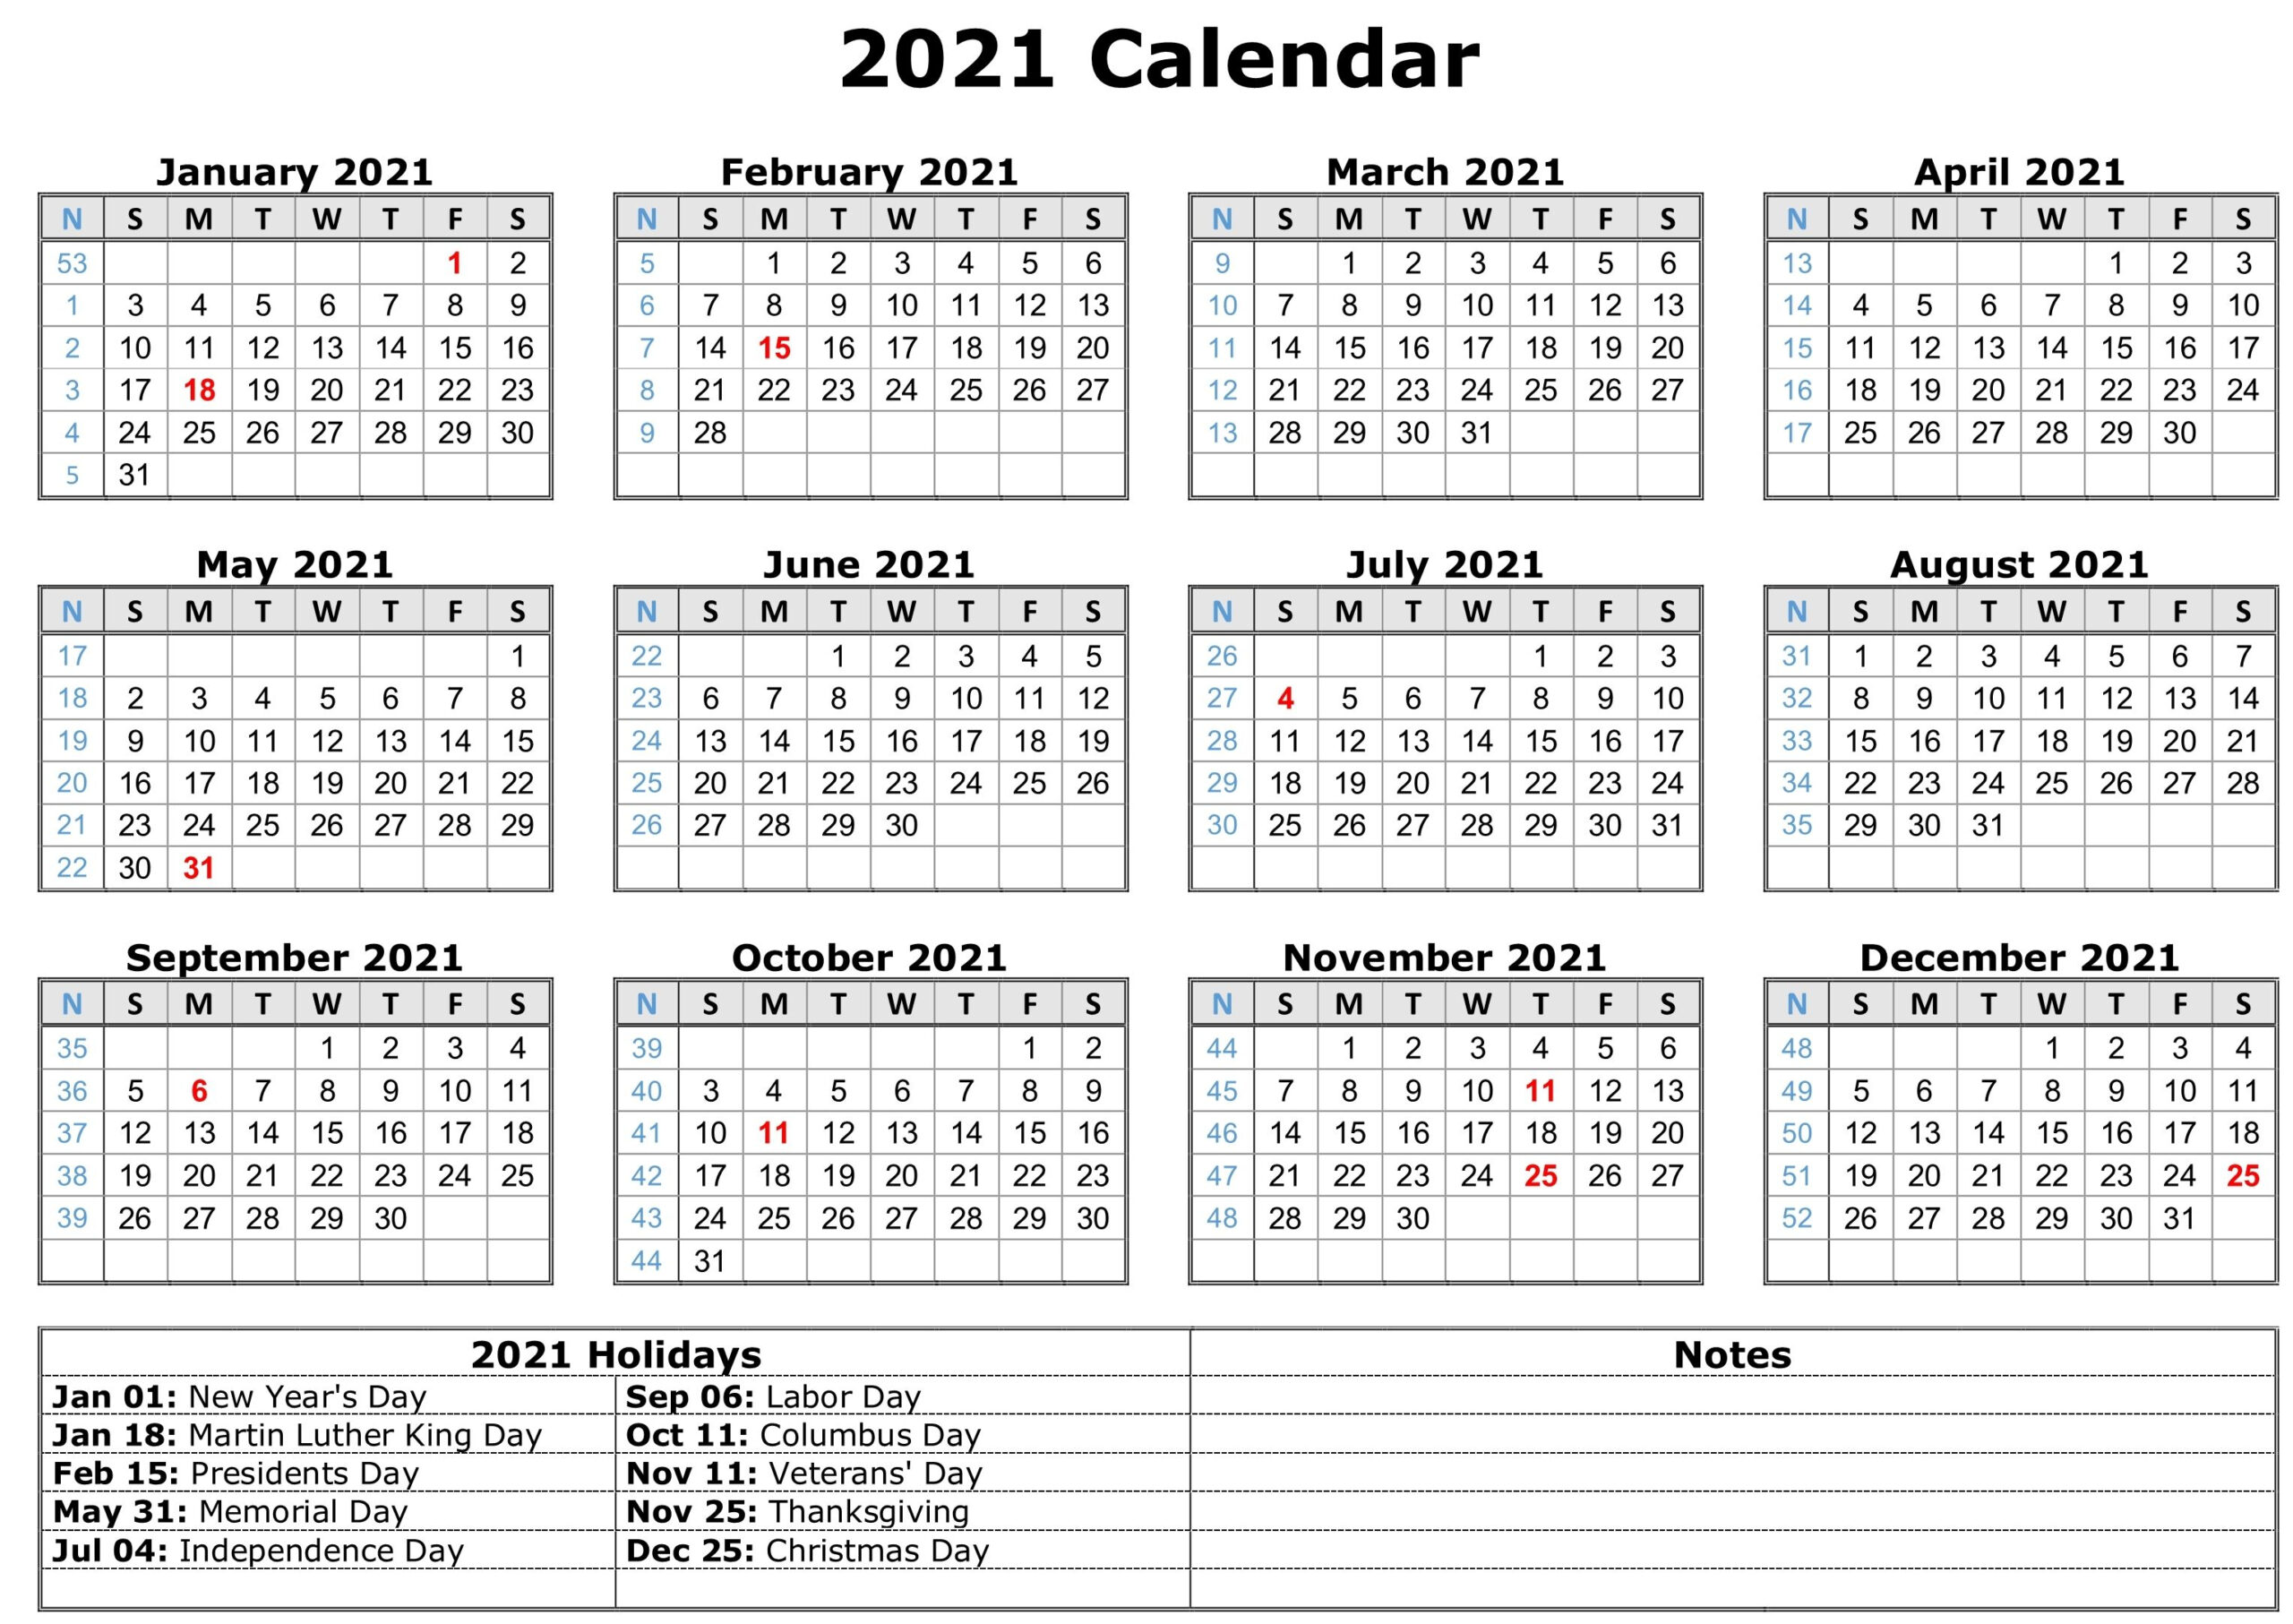 2021 Calendar With Holidays | Free Calendar Template pertaining to 2021 Calendar To Fill In